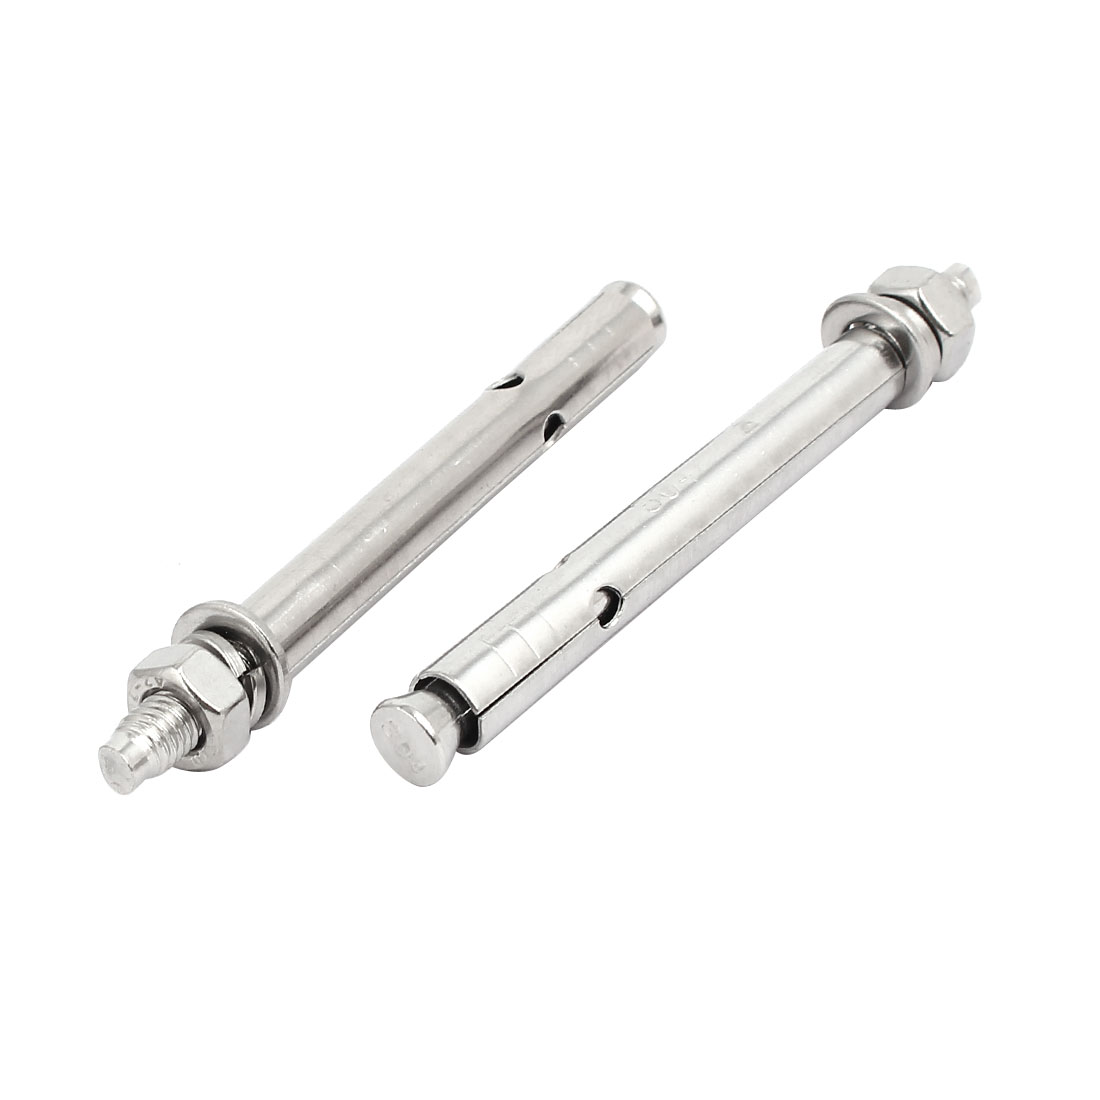 M6x80mm 304 Stainless Steel Air Condition Fitting Sleeve Anchor Expansion Bolt 2pcs